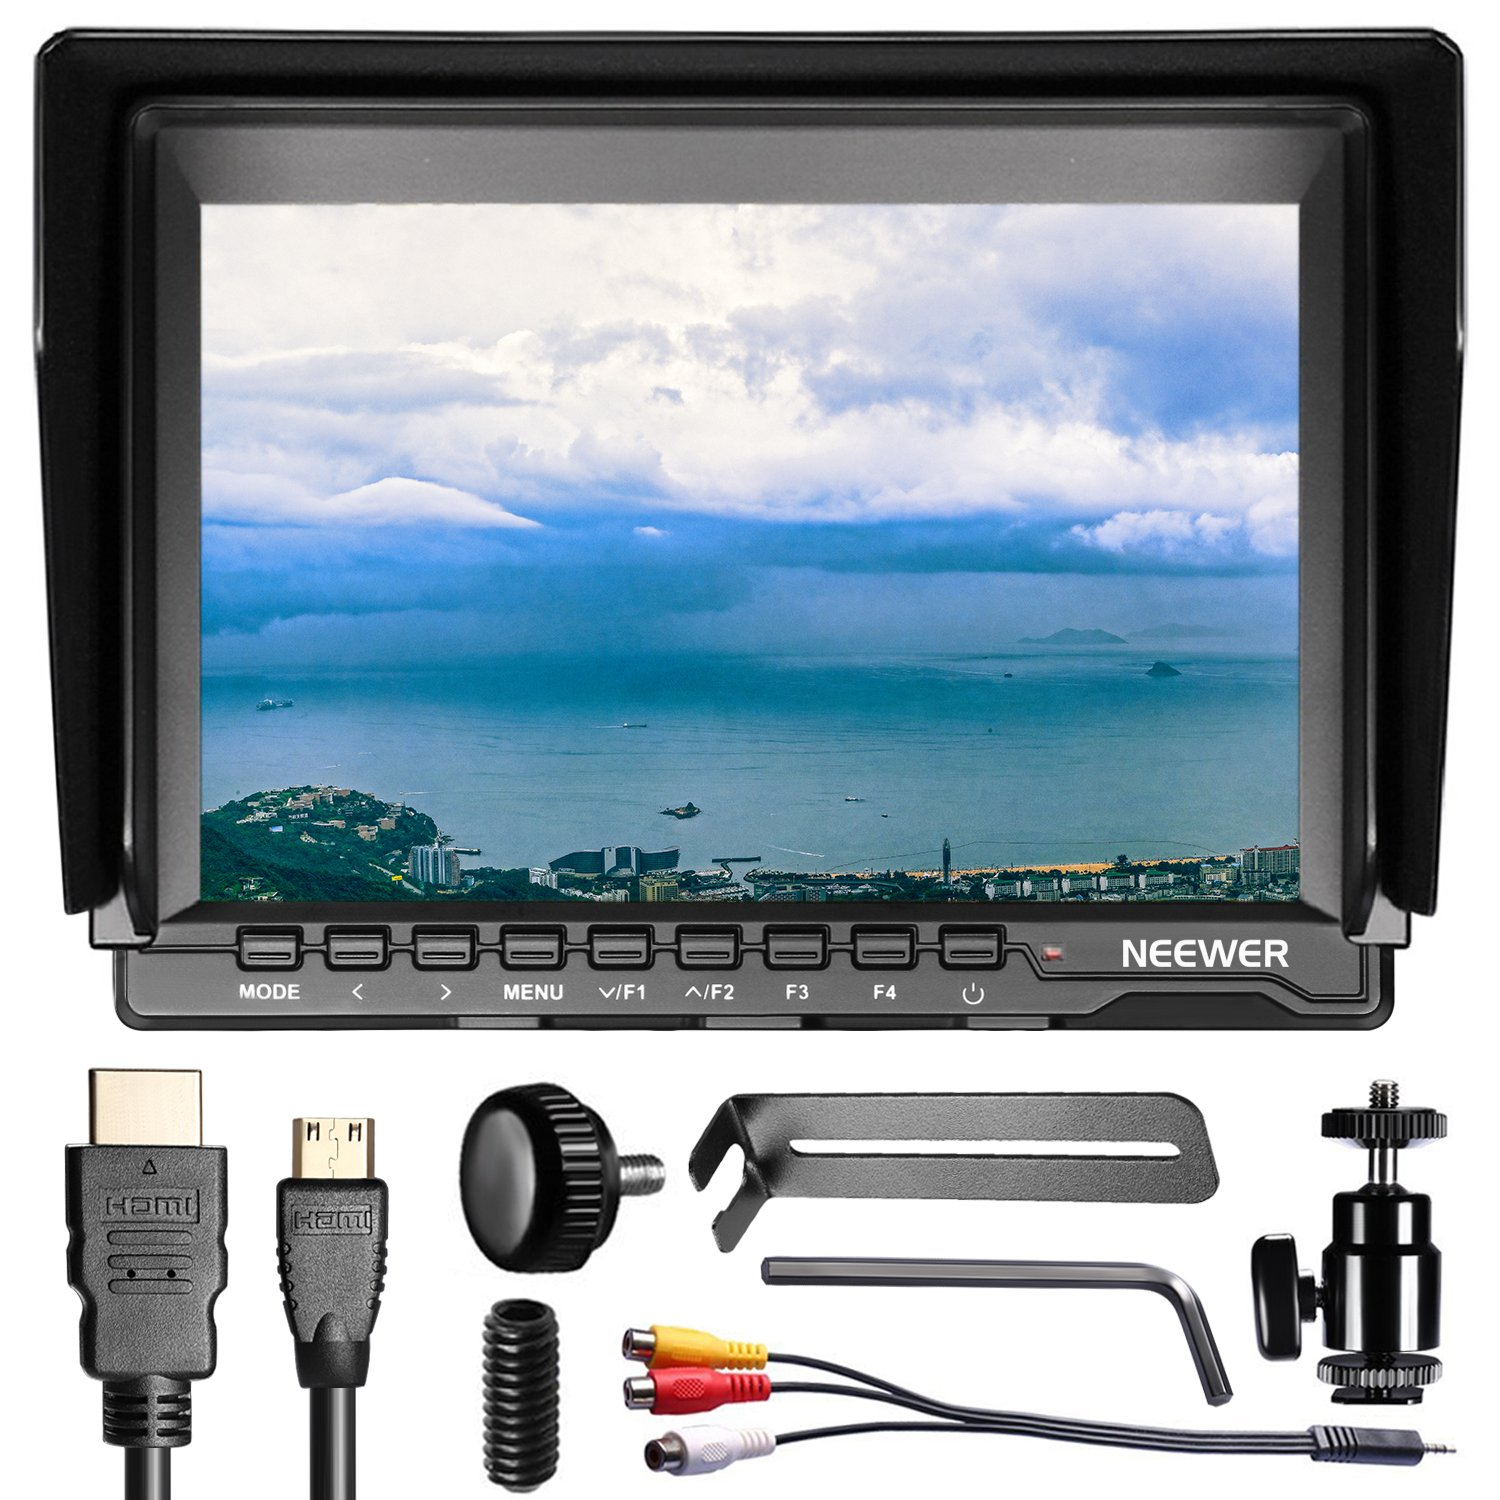 Neewer NW759(C) 7 inches 1280x800 IPS Screen Field Monitor with HDMI Cable for BMPCC AV Cable for FPV, Adjustable Display Ratio Work with lp-e6 for Sony Canon Nikon Battery (Battery Not Included)